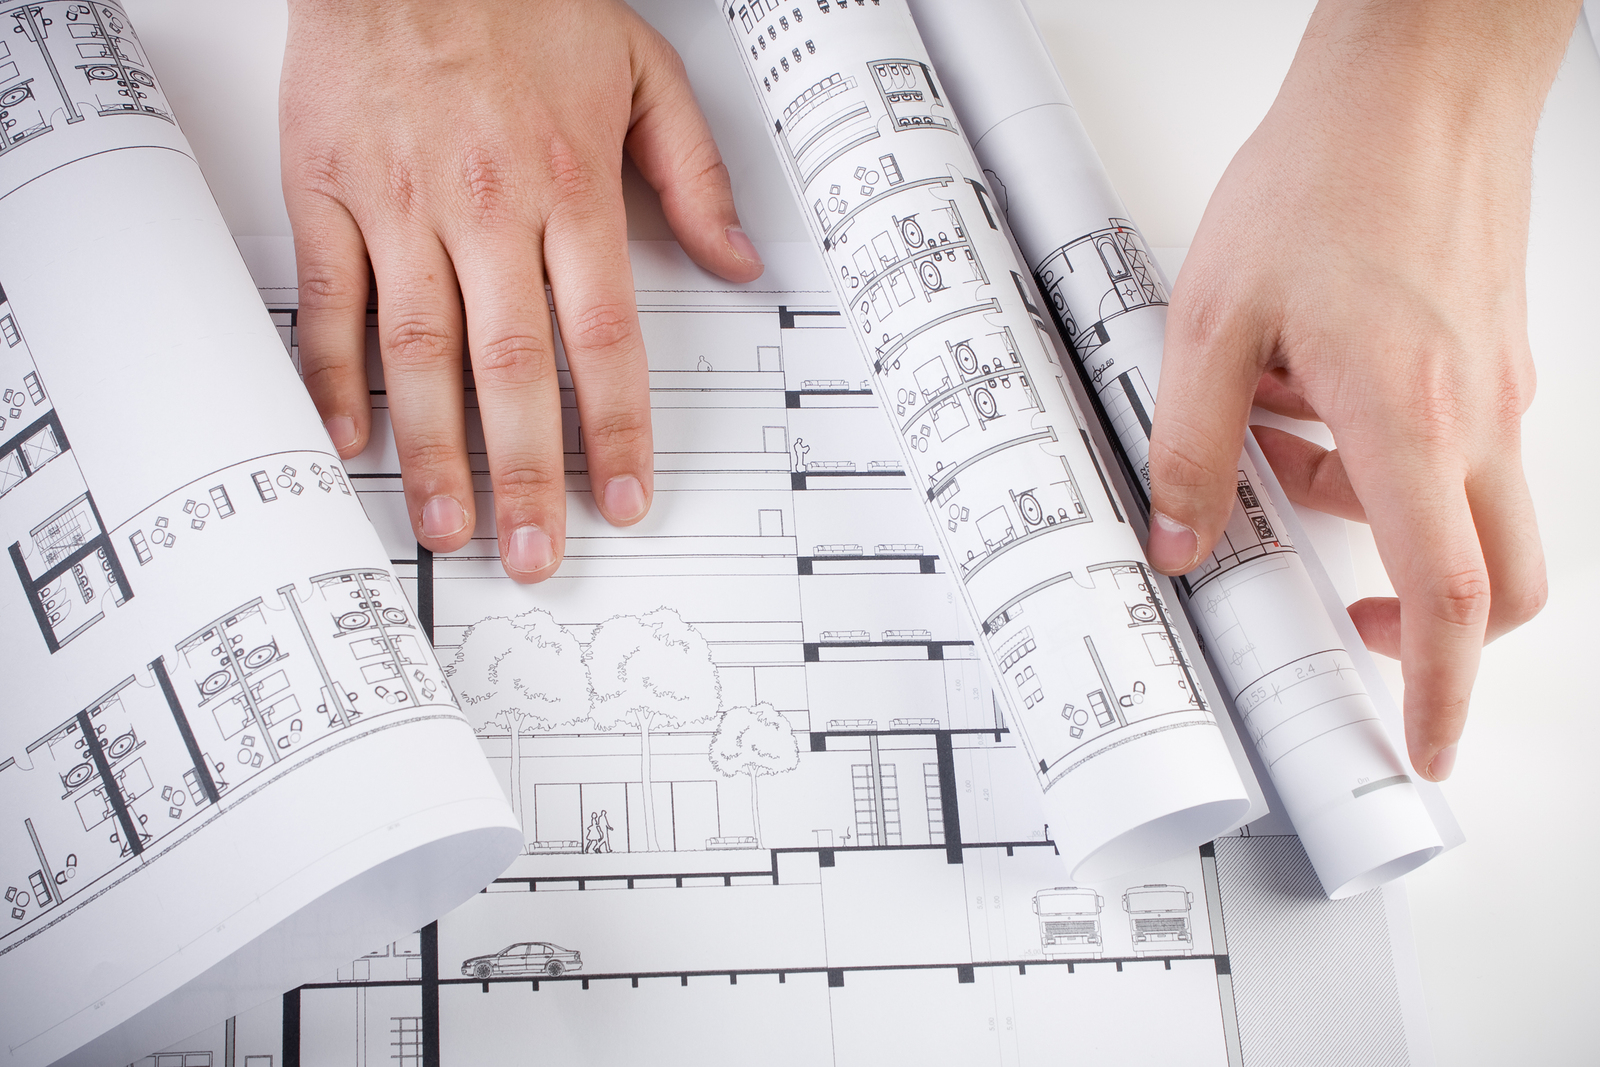 bigstock-Architectural-plans-and-bluepr-25606607